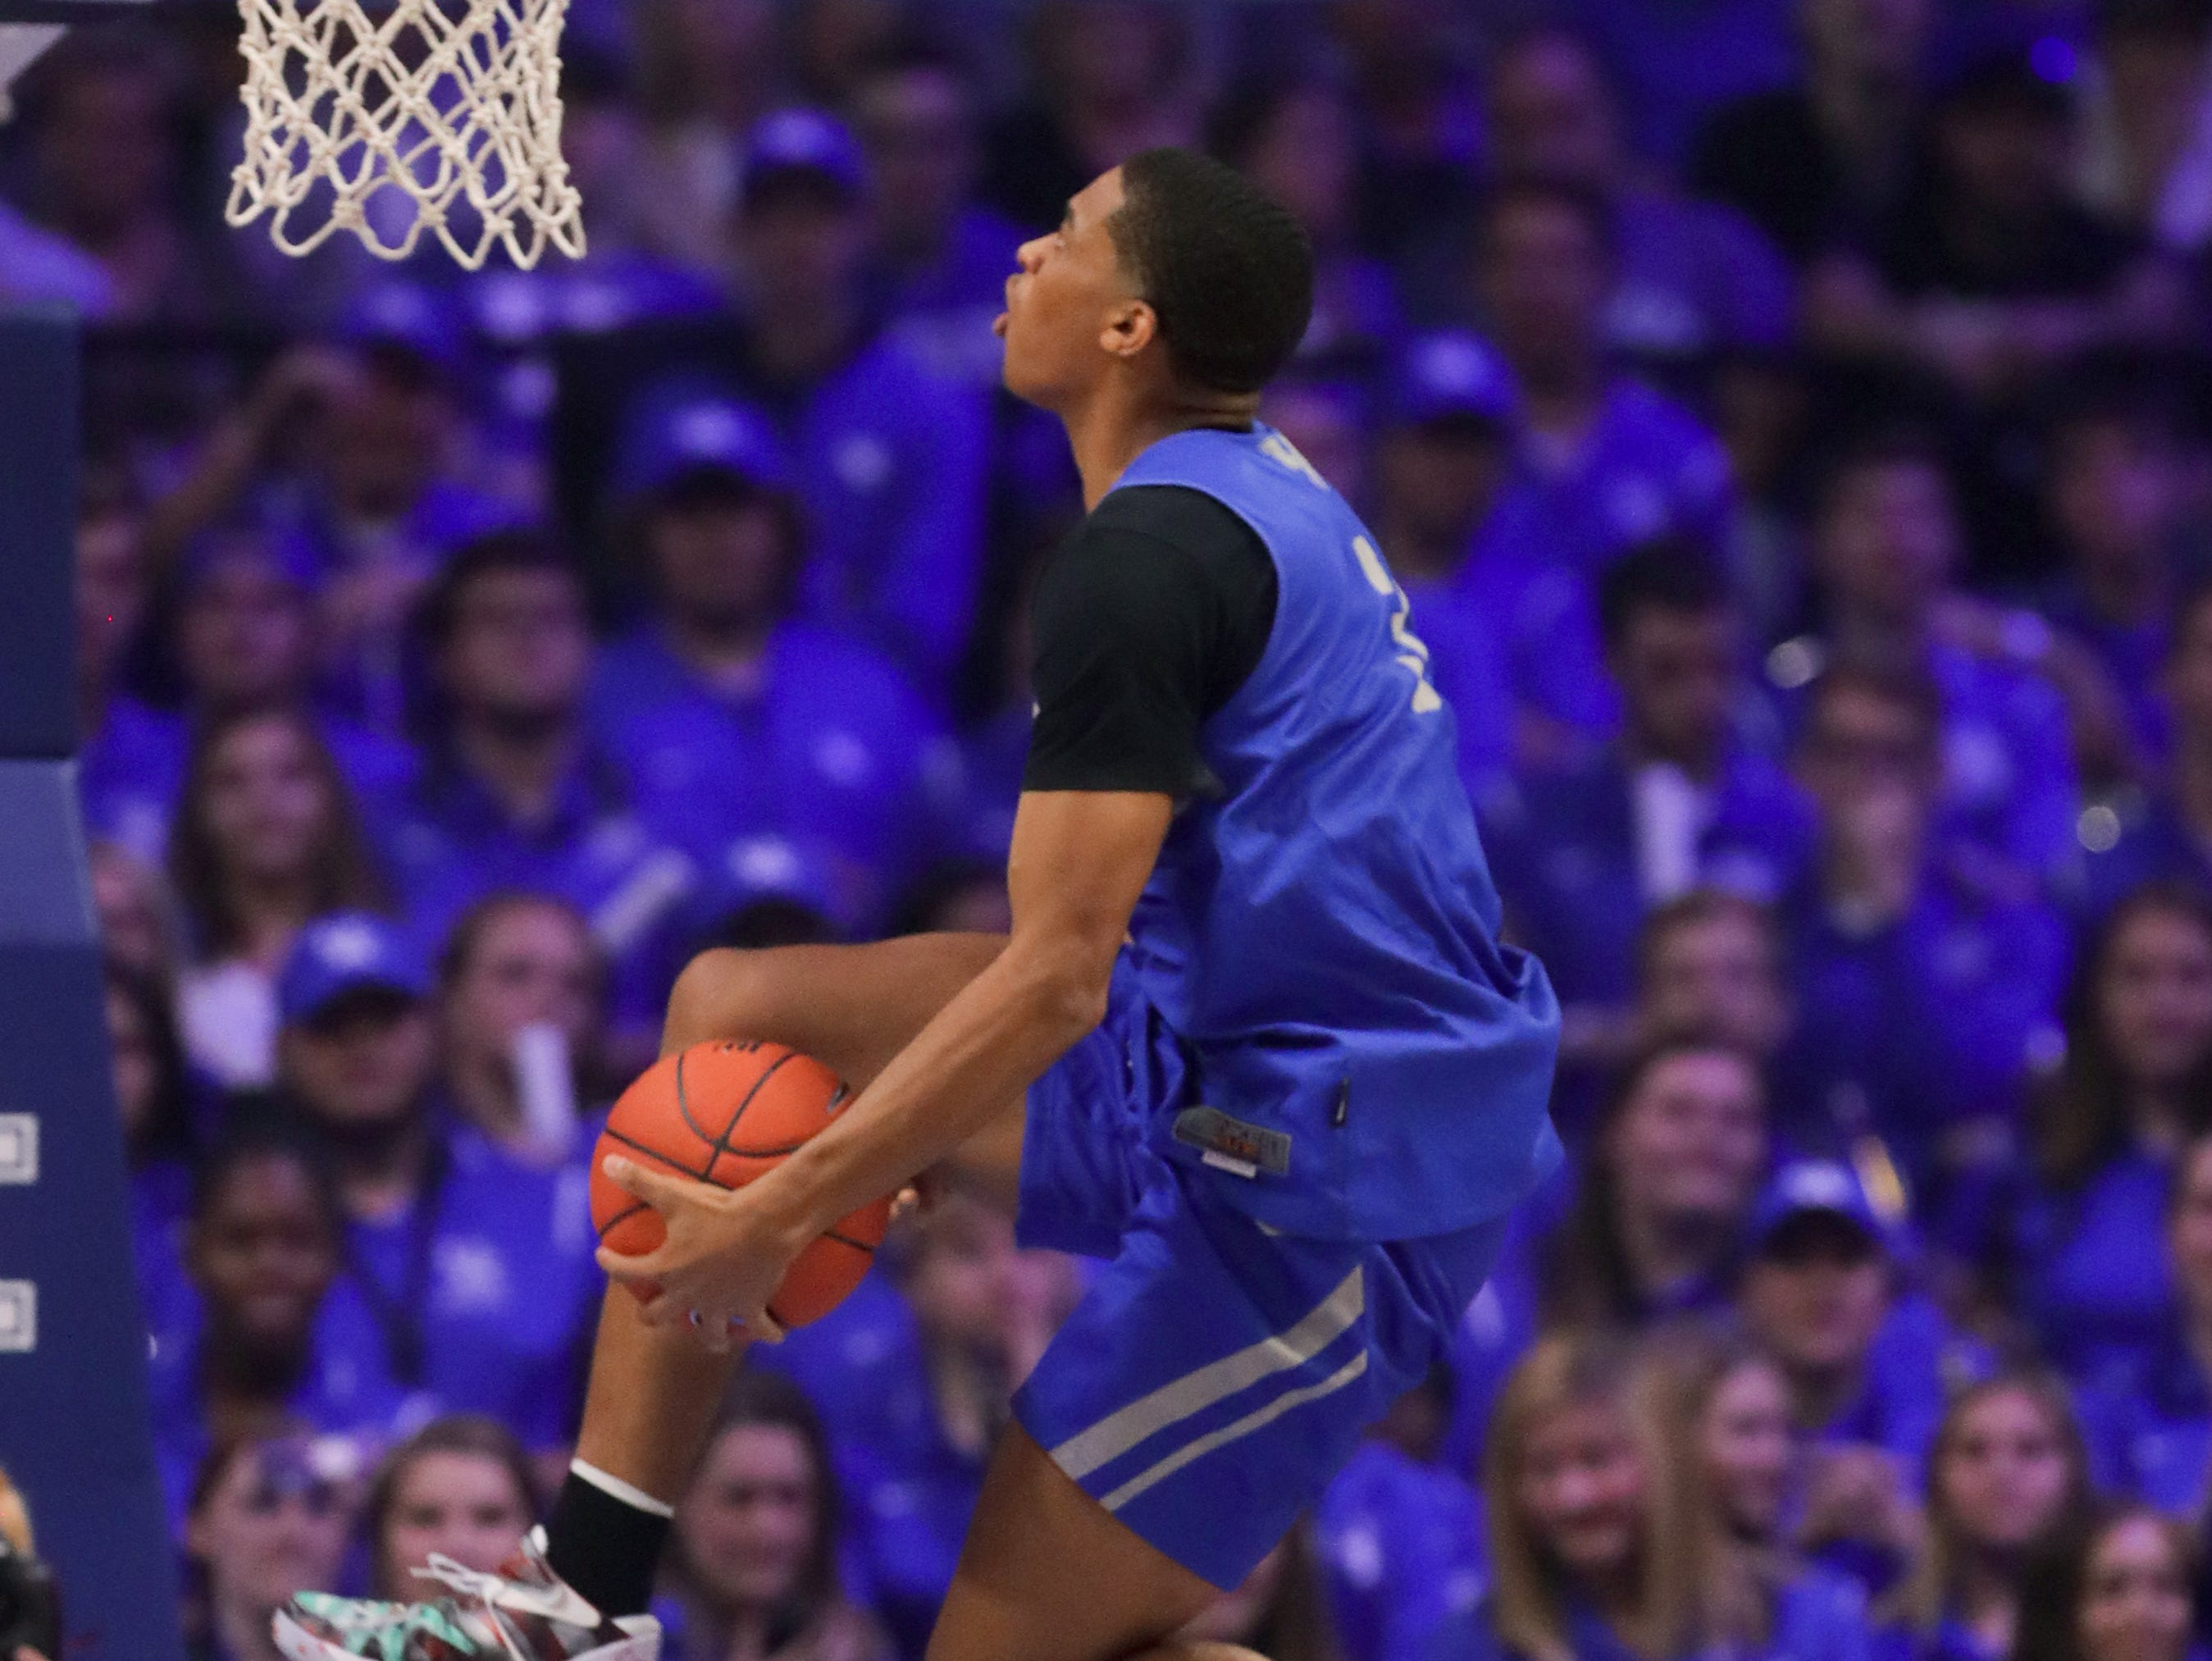 Kentucky Keldon Johnson with one of his dunk attempts contest at Big Blue Madness in Lexington, Kentucky.